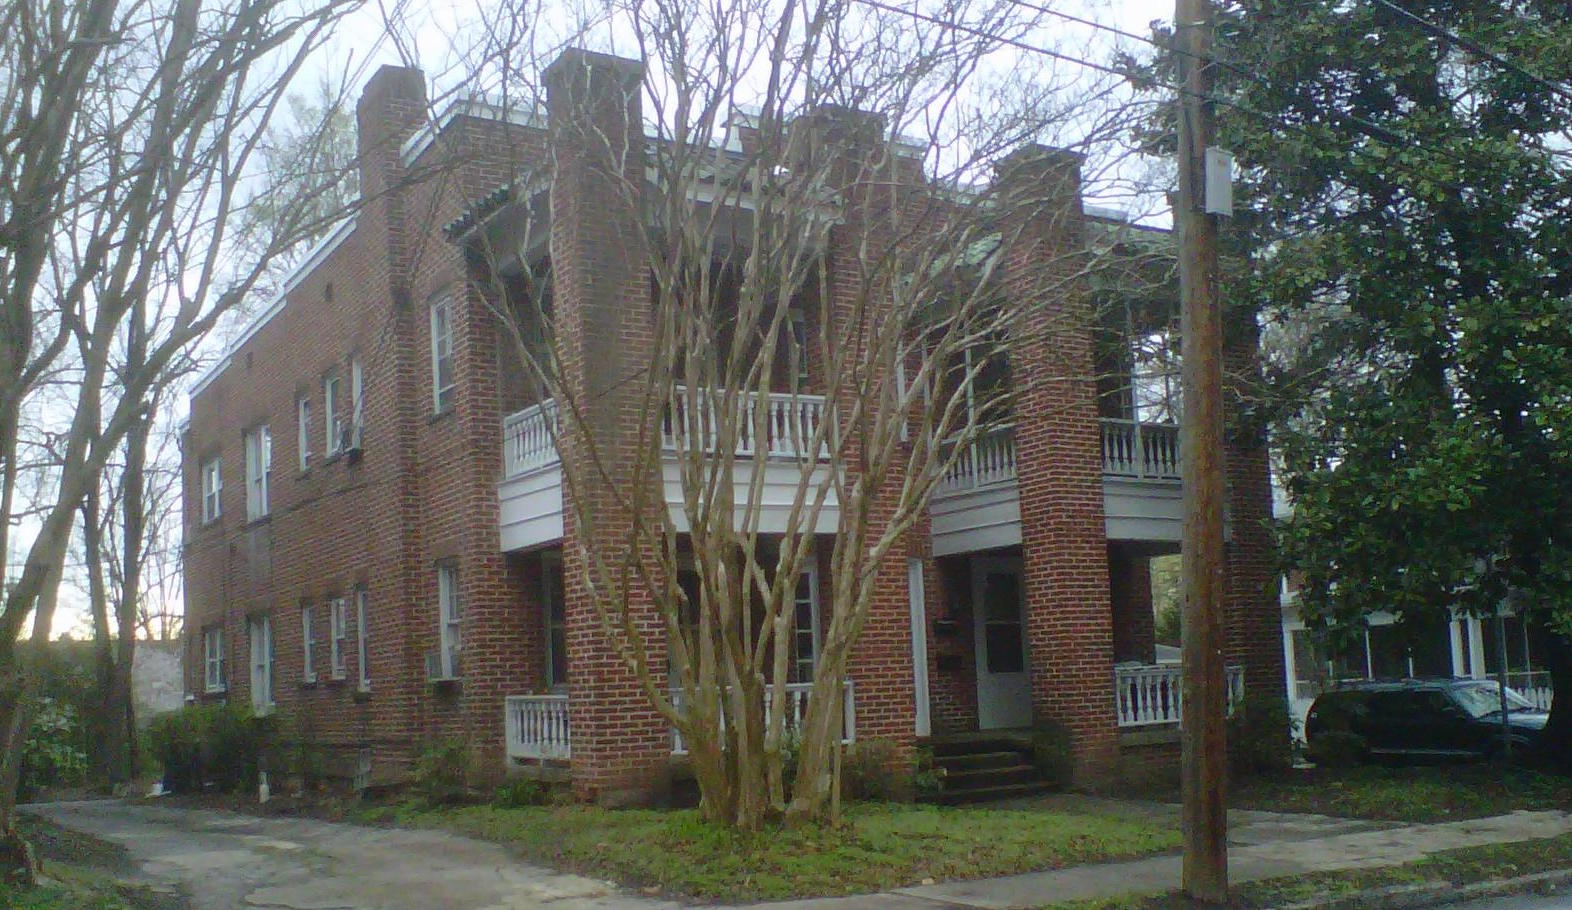 four-unit brick apartment house at 406 s. mendenhall street